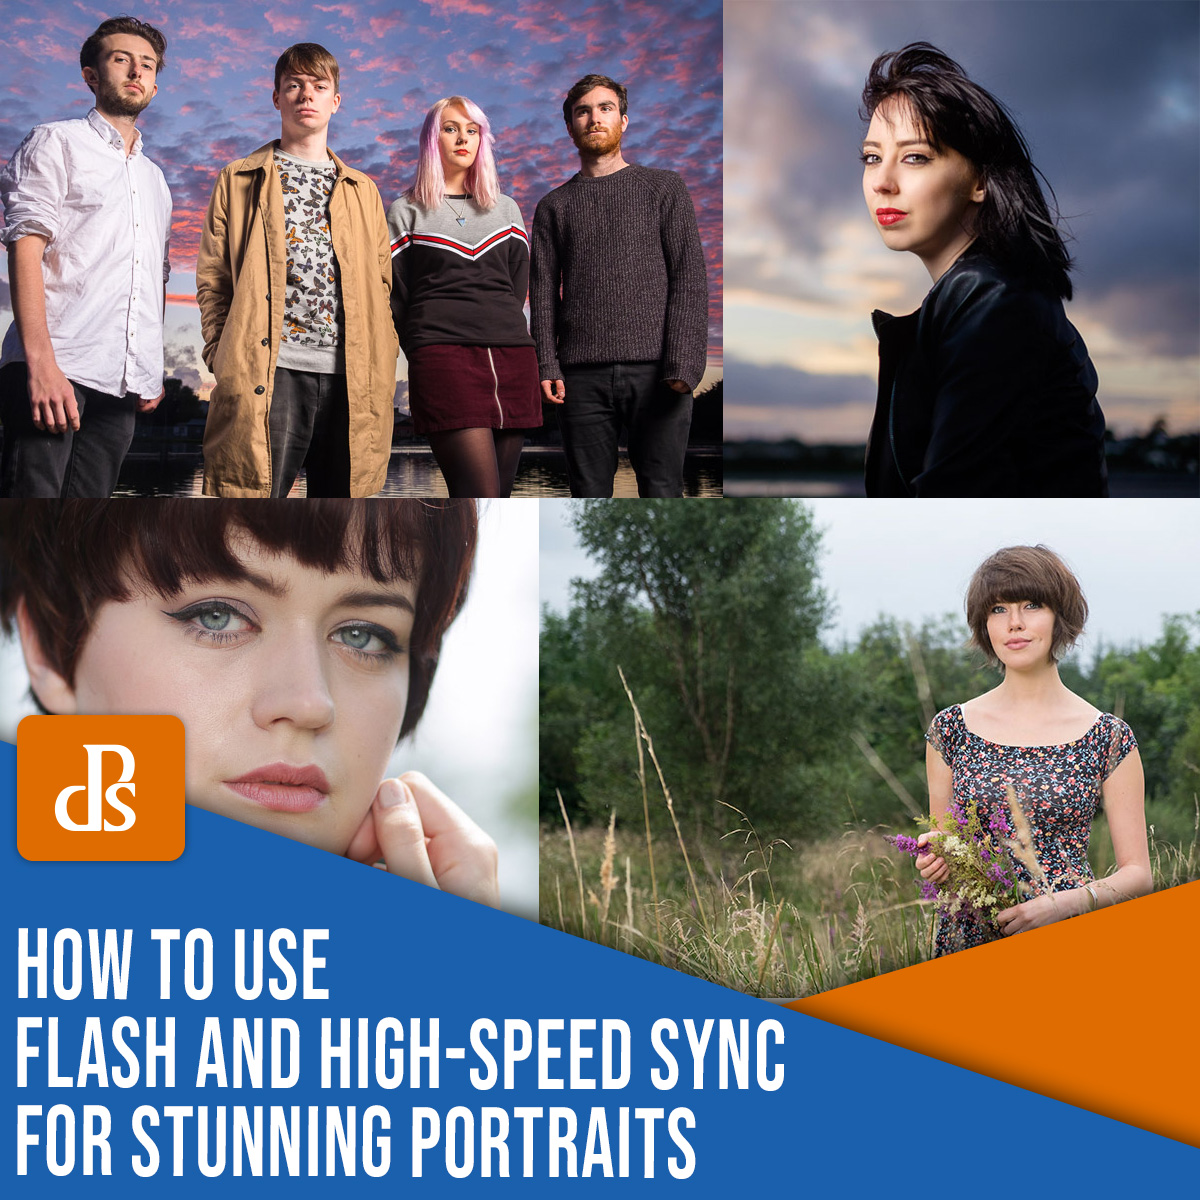 how to use flash and high-speed sync for stunning portraits